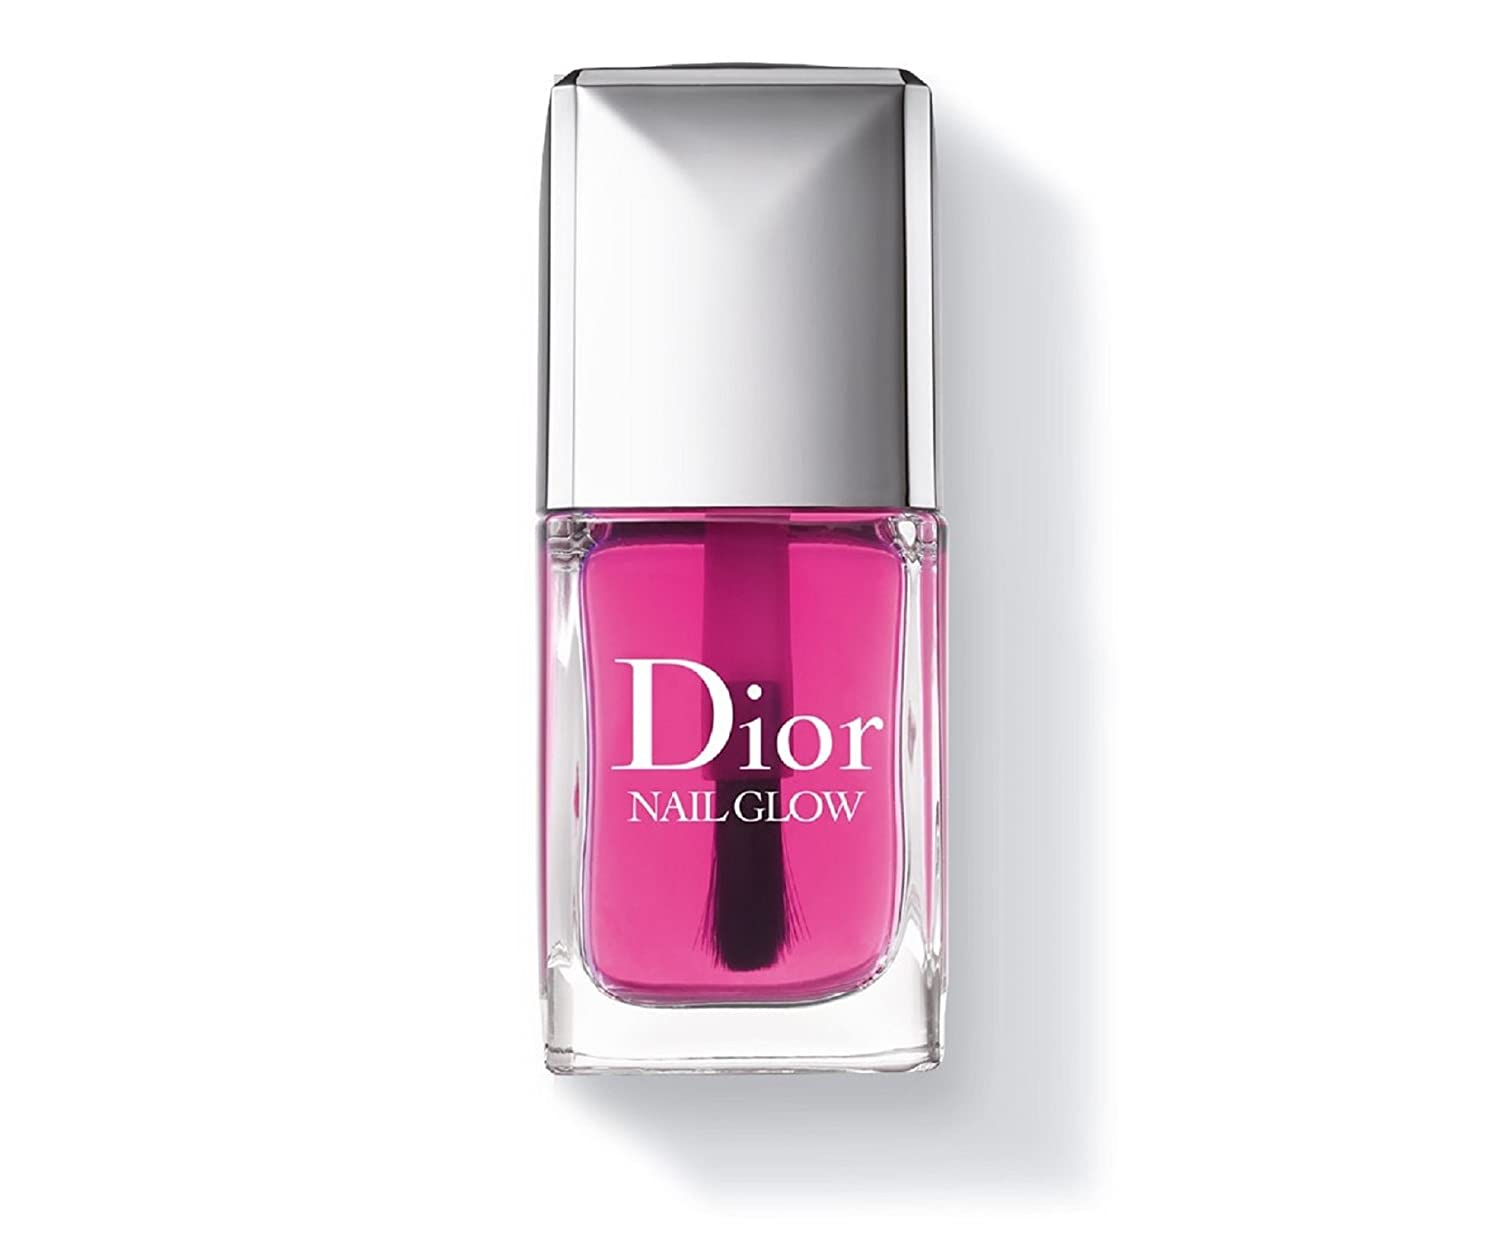 Christian Dior Dior Nail Glow French Manicure Effect Whitening Nail Care, 0.33 Ounce : Nail Polish : Beauty